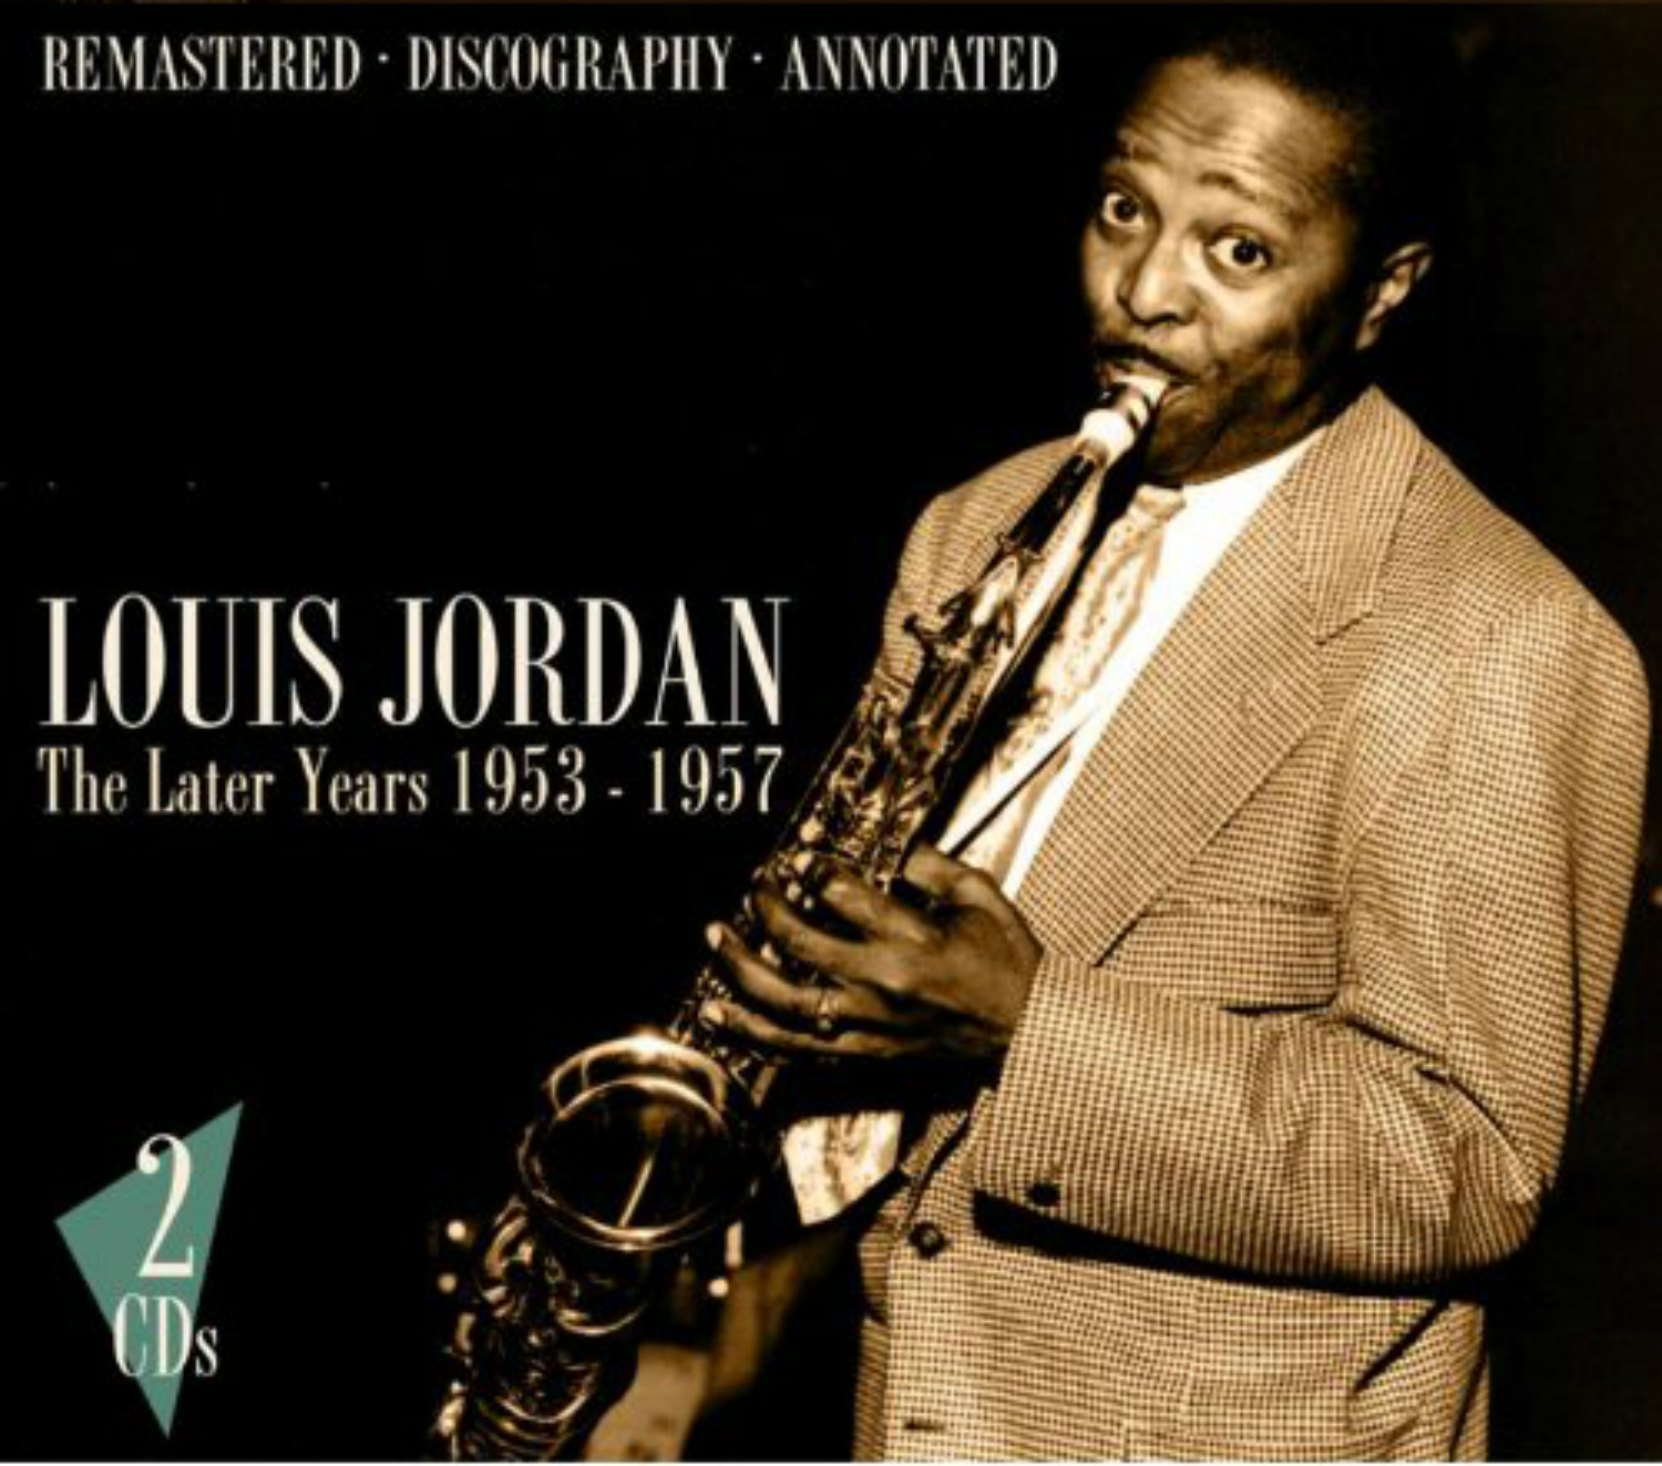 CD cover, Louis Jordan - The Later Years 1953-57, a 2 CD set on JSP Records